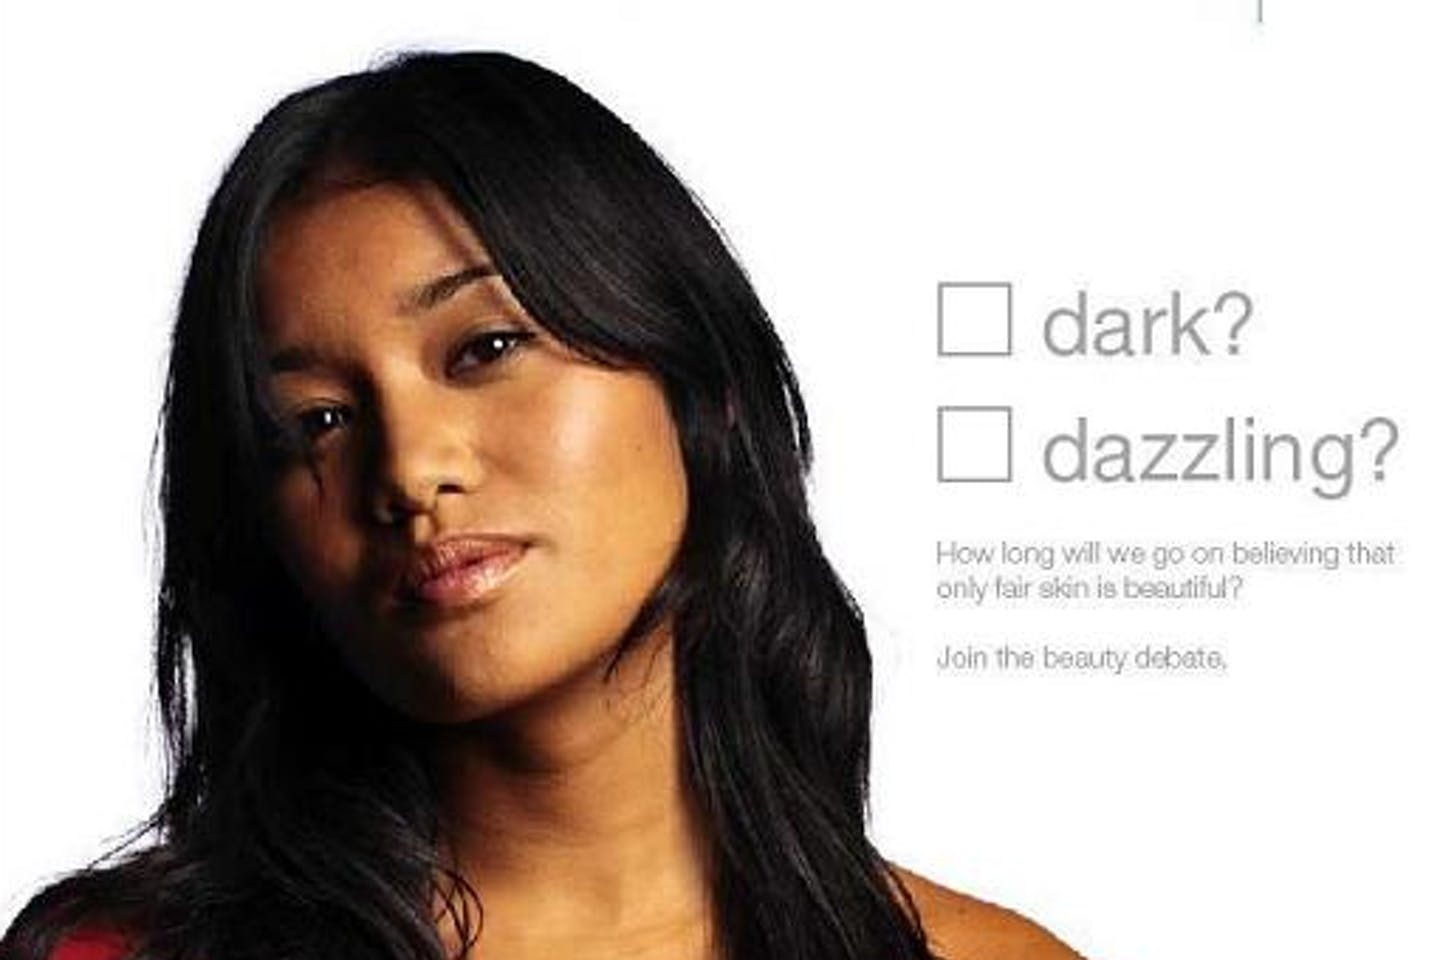 An advertisement for Dove soap.